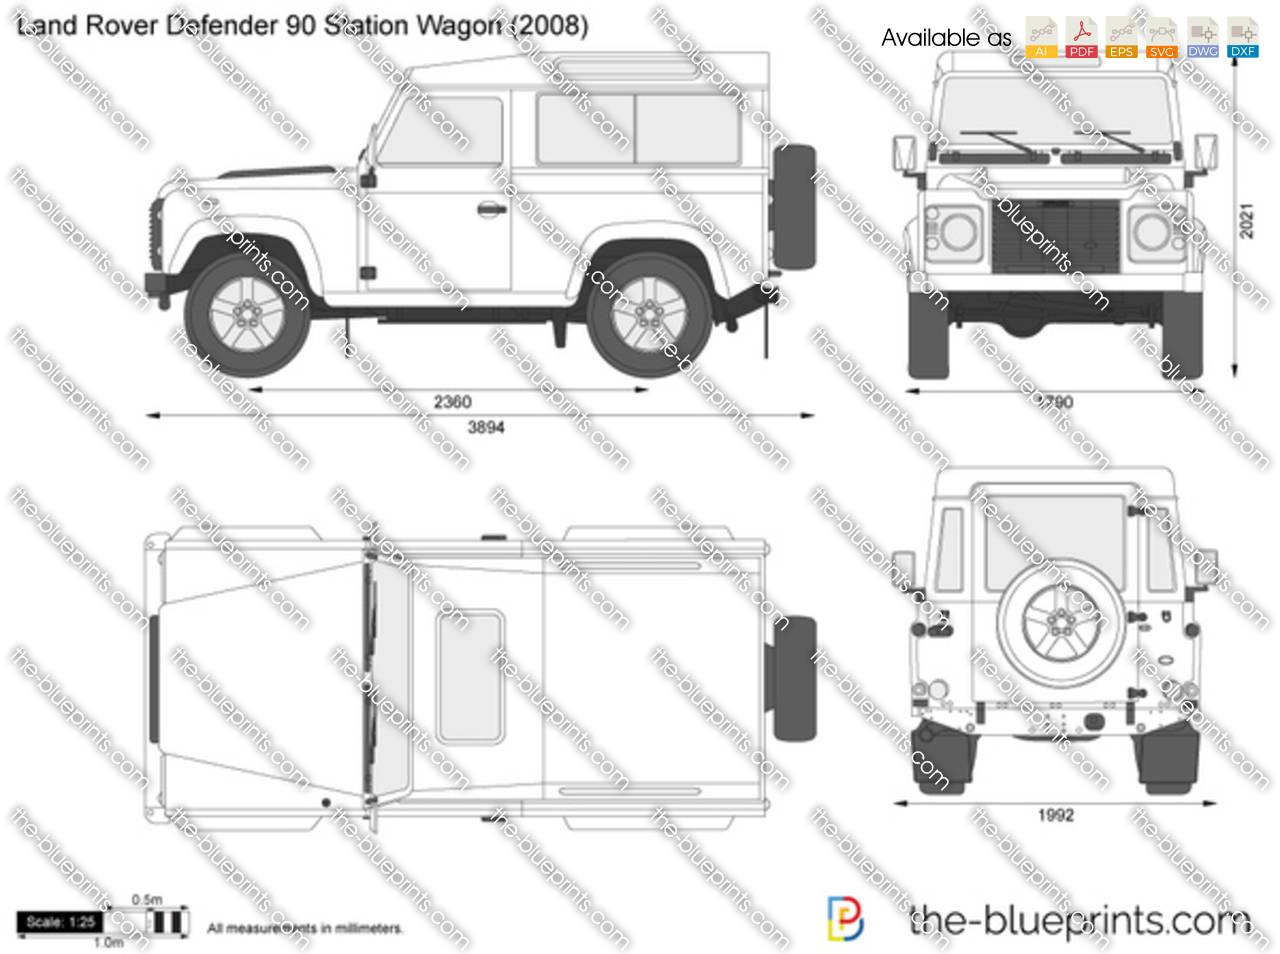 Land Rover Defender 90 Station Wagon 2015